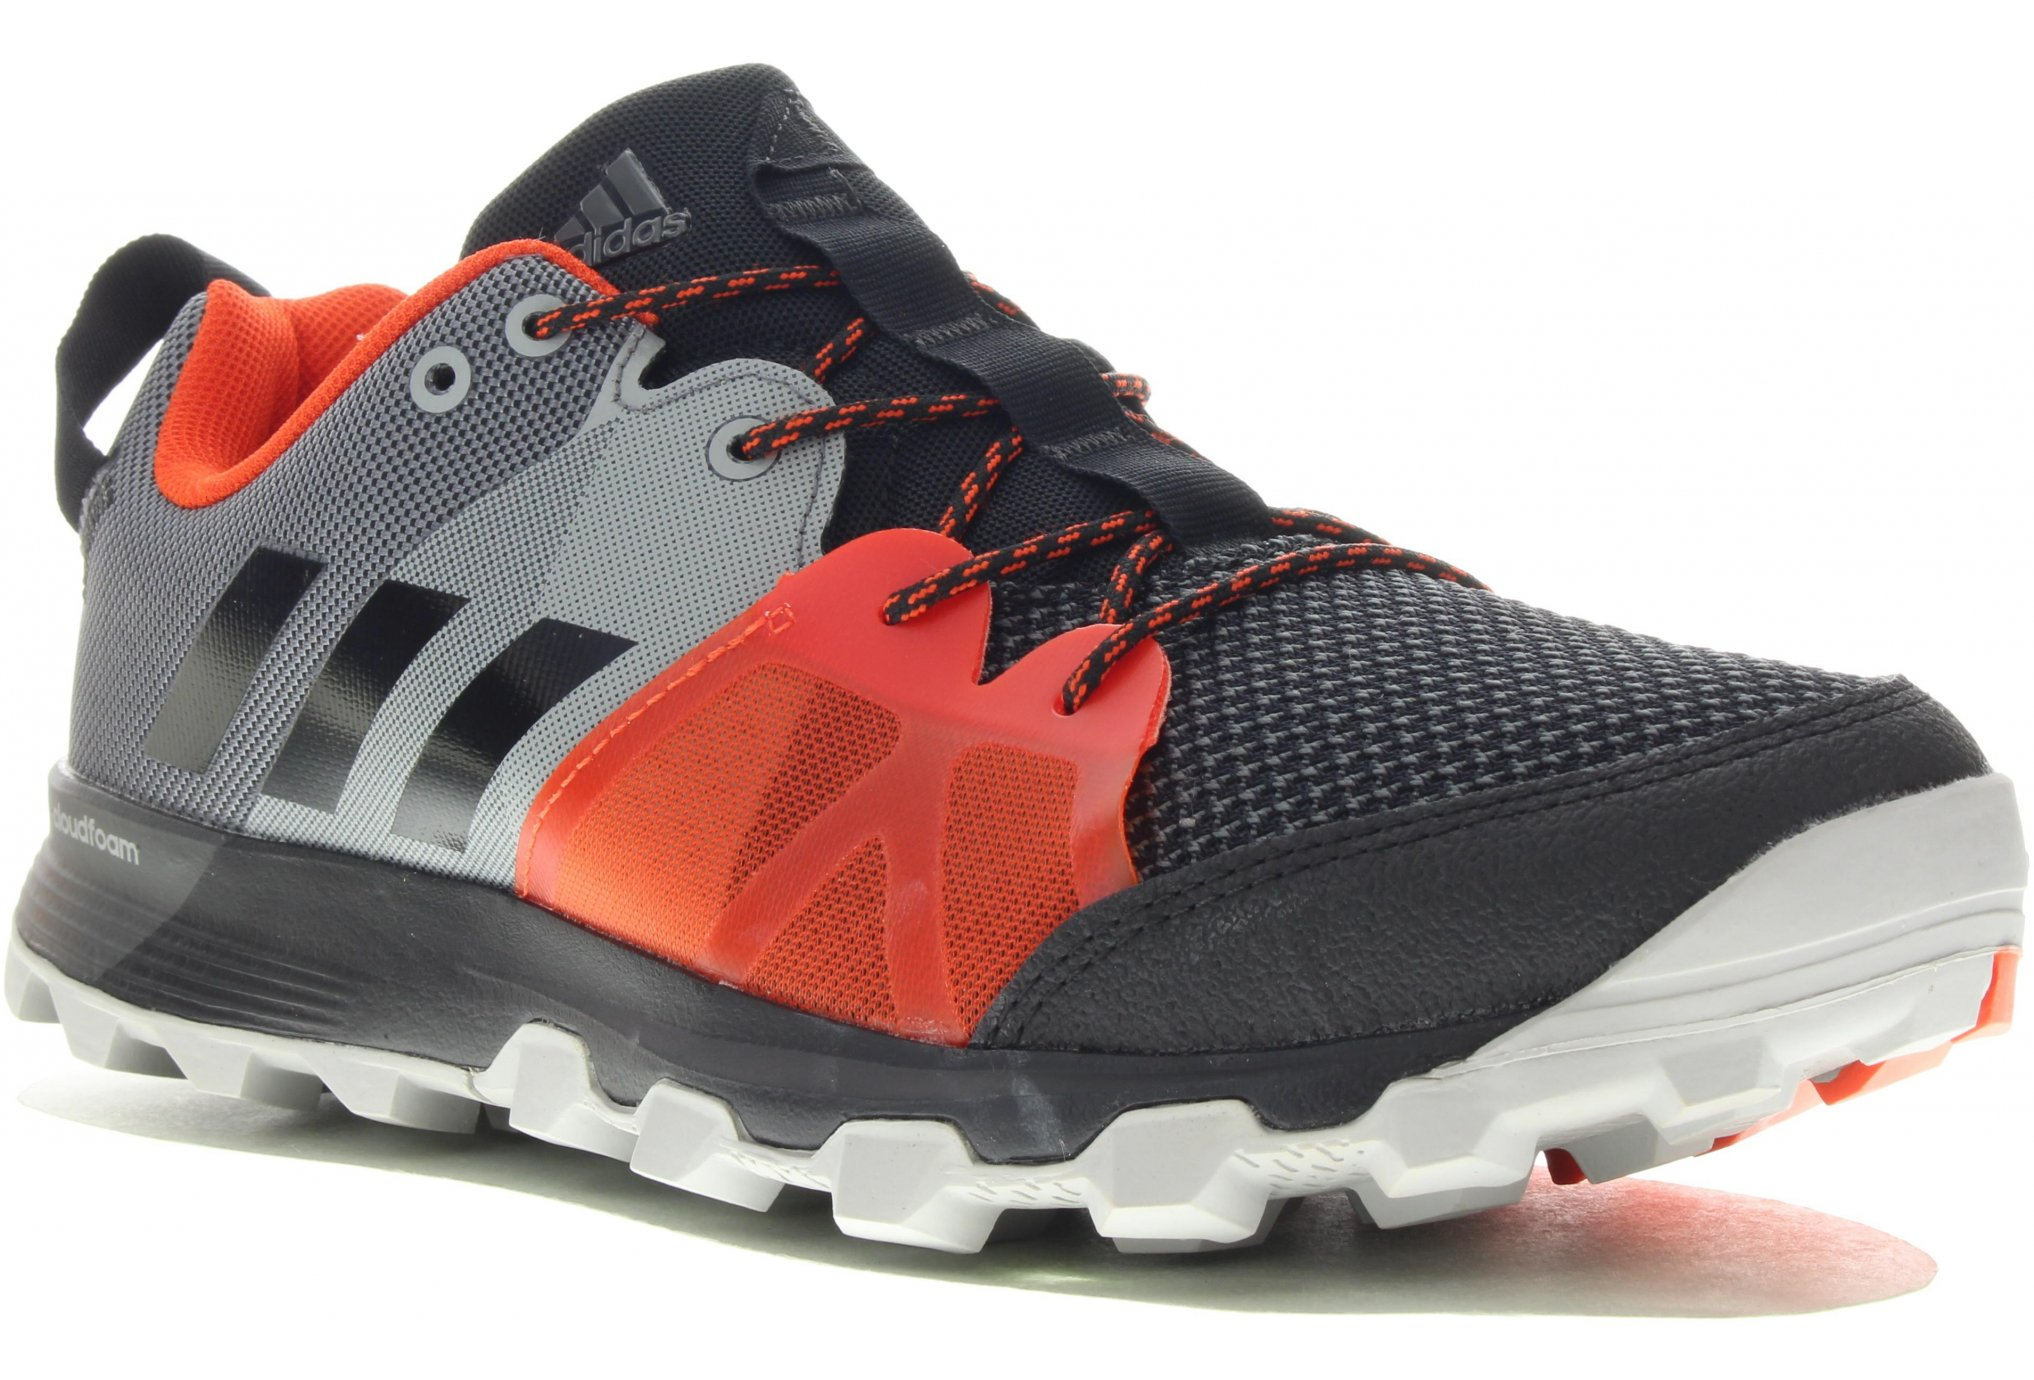 adidas Kanadia 8.1 TR M Chaussures homme